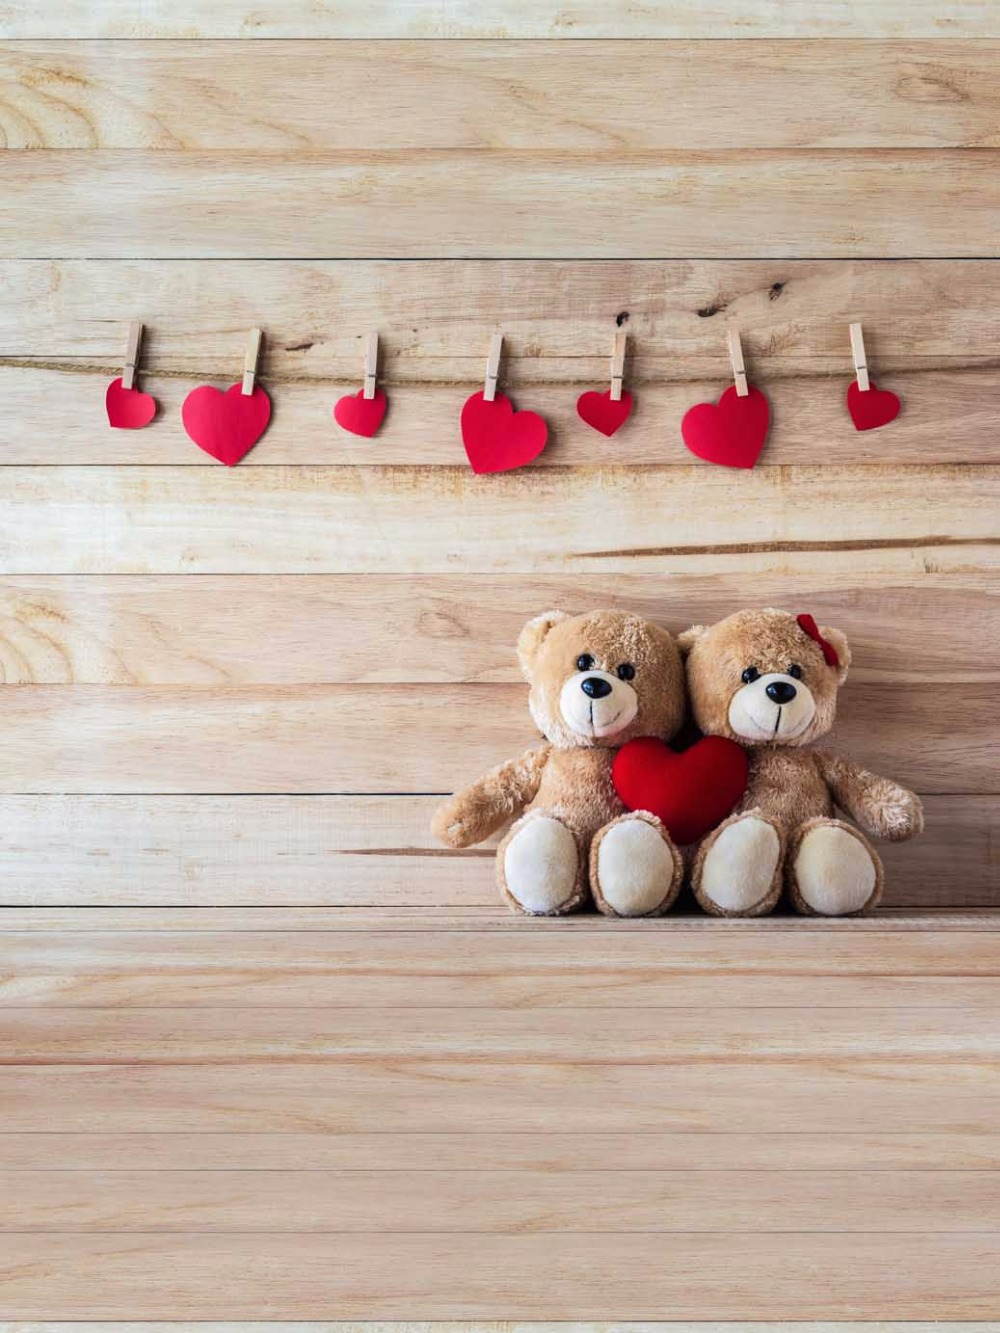 Wood Photography Backdrop 5x7 Small Red Heart Teddy Bear Background for Kids Birth Party Photography Photo Booth for Newborn(China (Mainland))